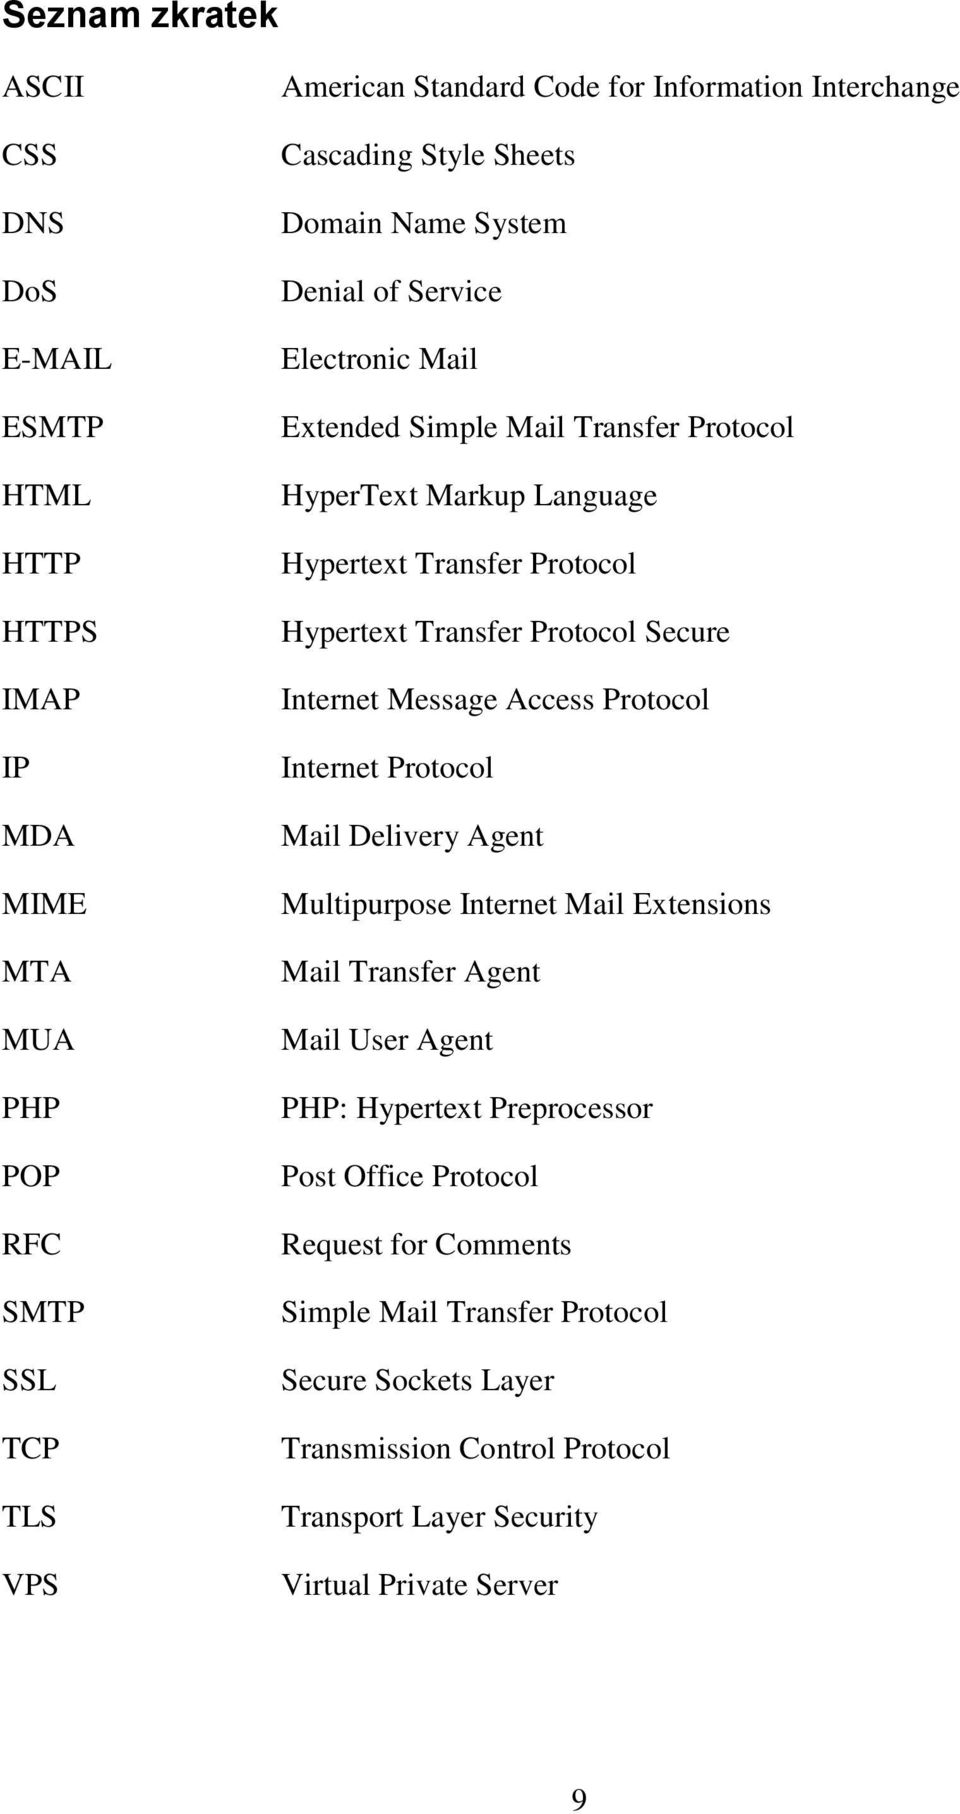 Transfer Protocol Secure Internet Message Access Protocol Internet Protocol Mail Delivery Agent Multipurpose Internet Mail Extensions Mail Transfer Agent Mail User Agent PHP: